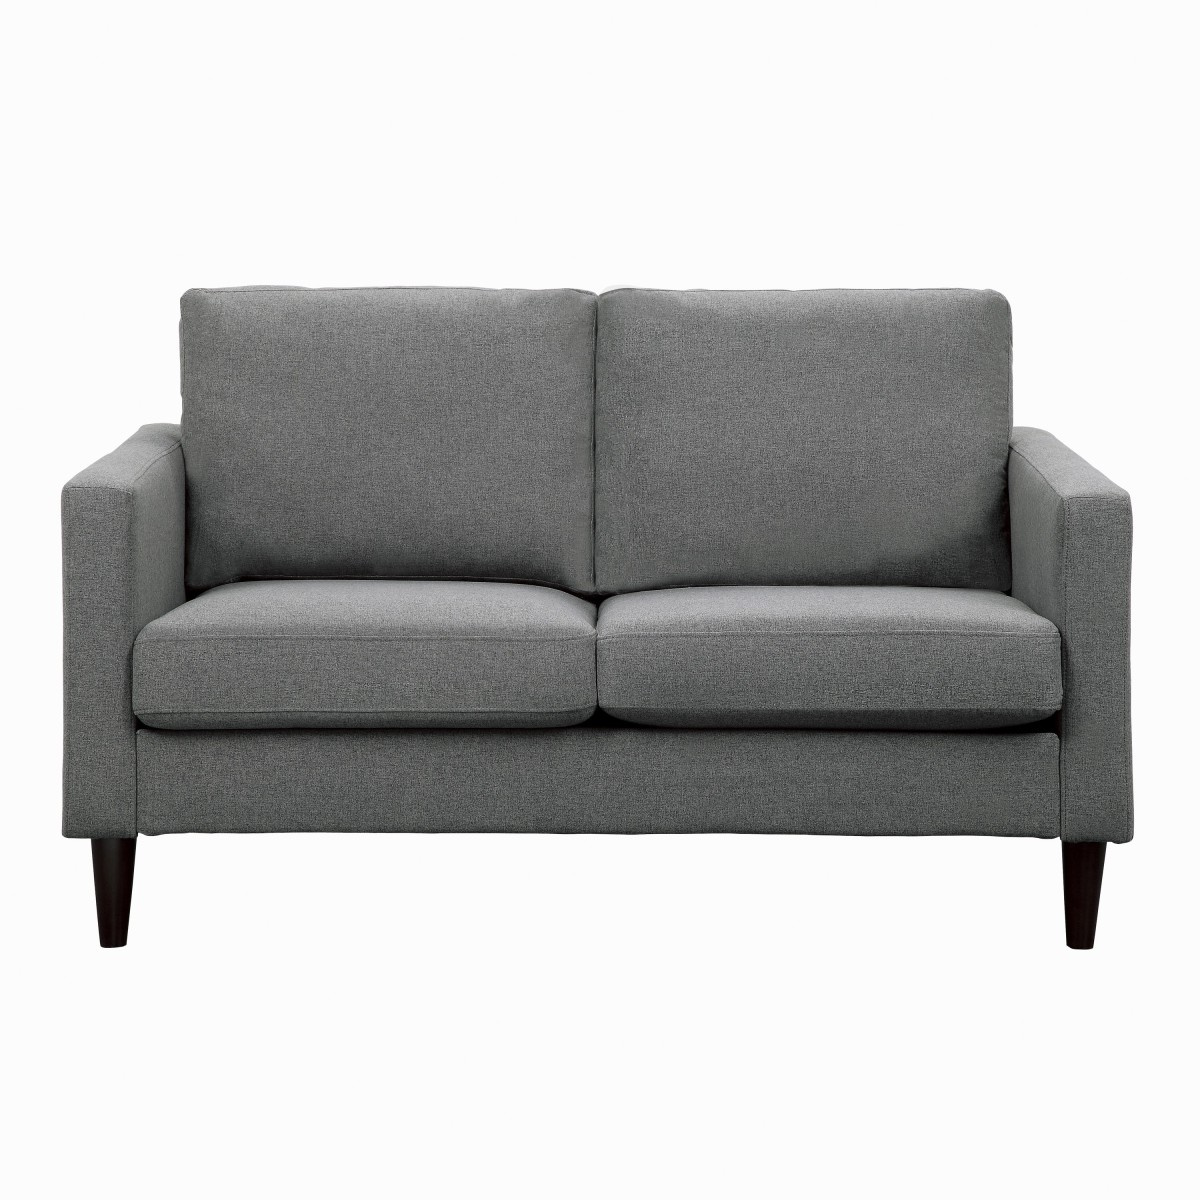 9538gy 2 Love Seat